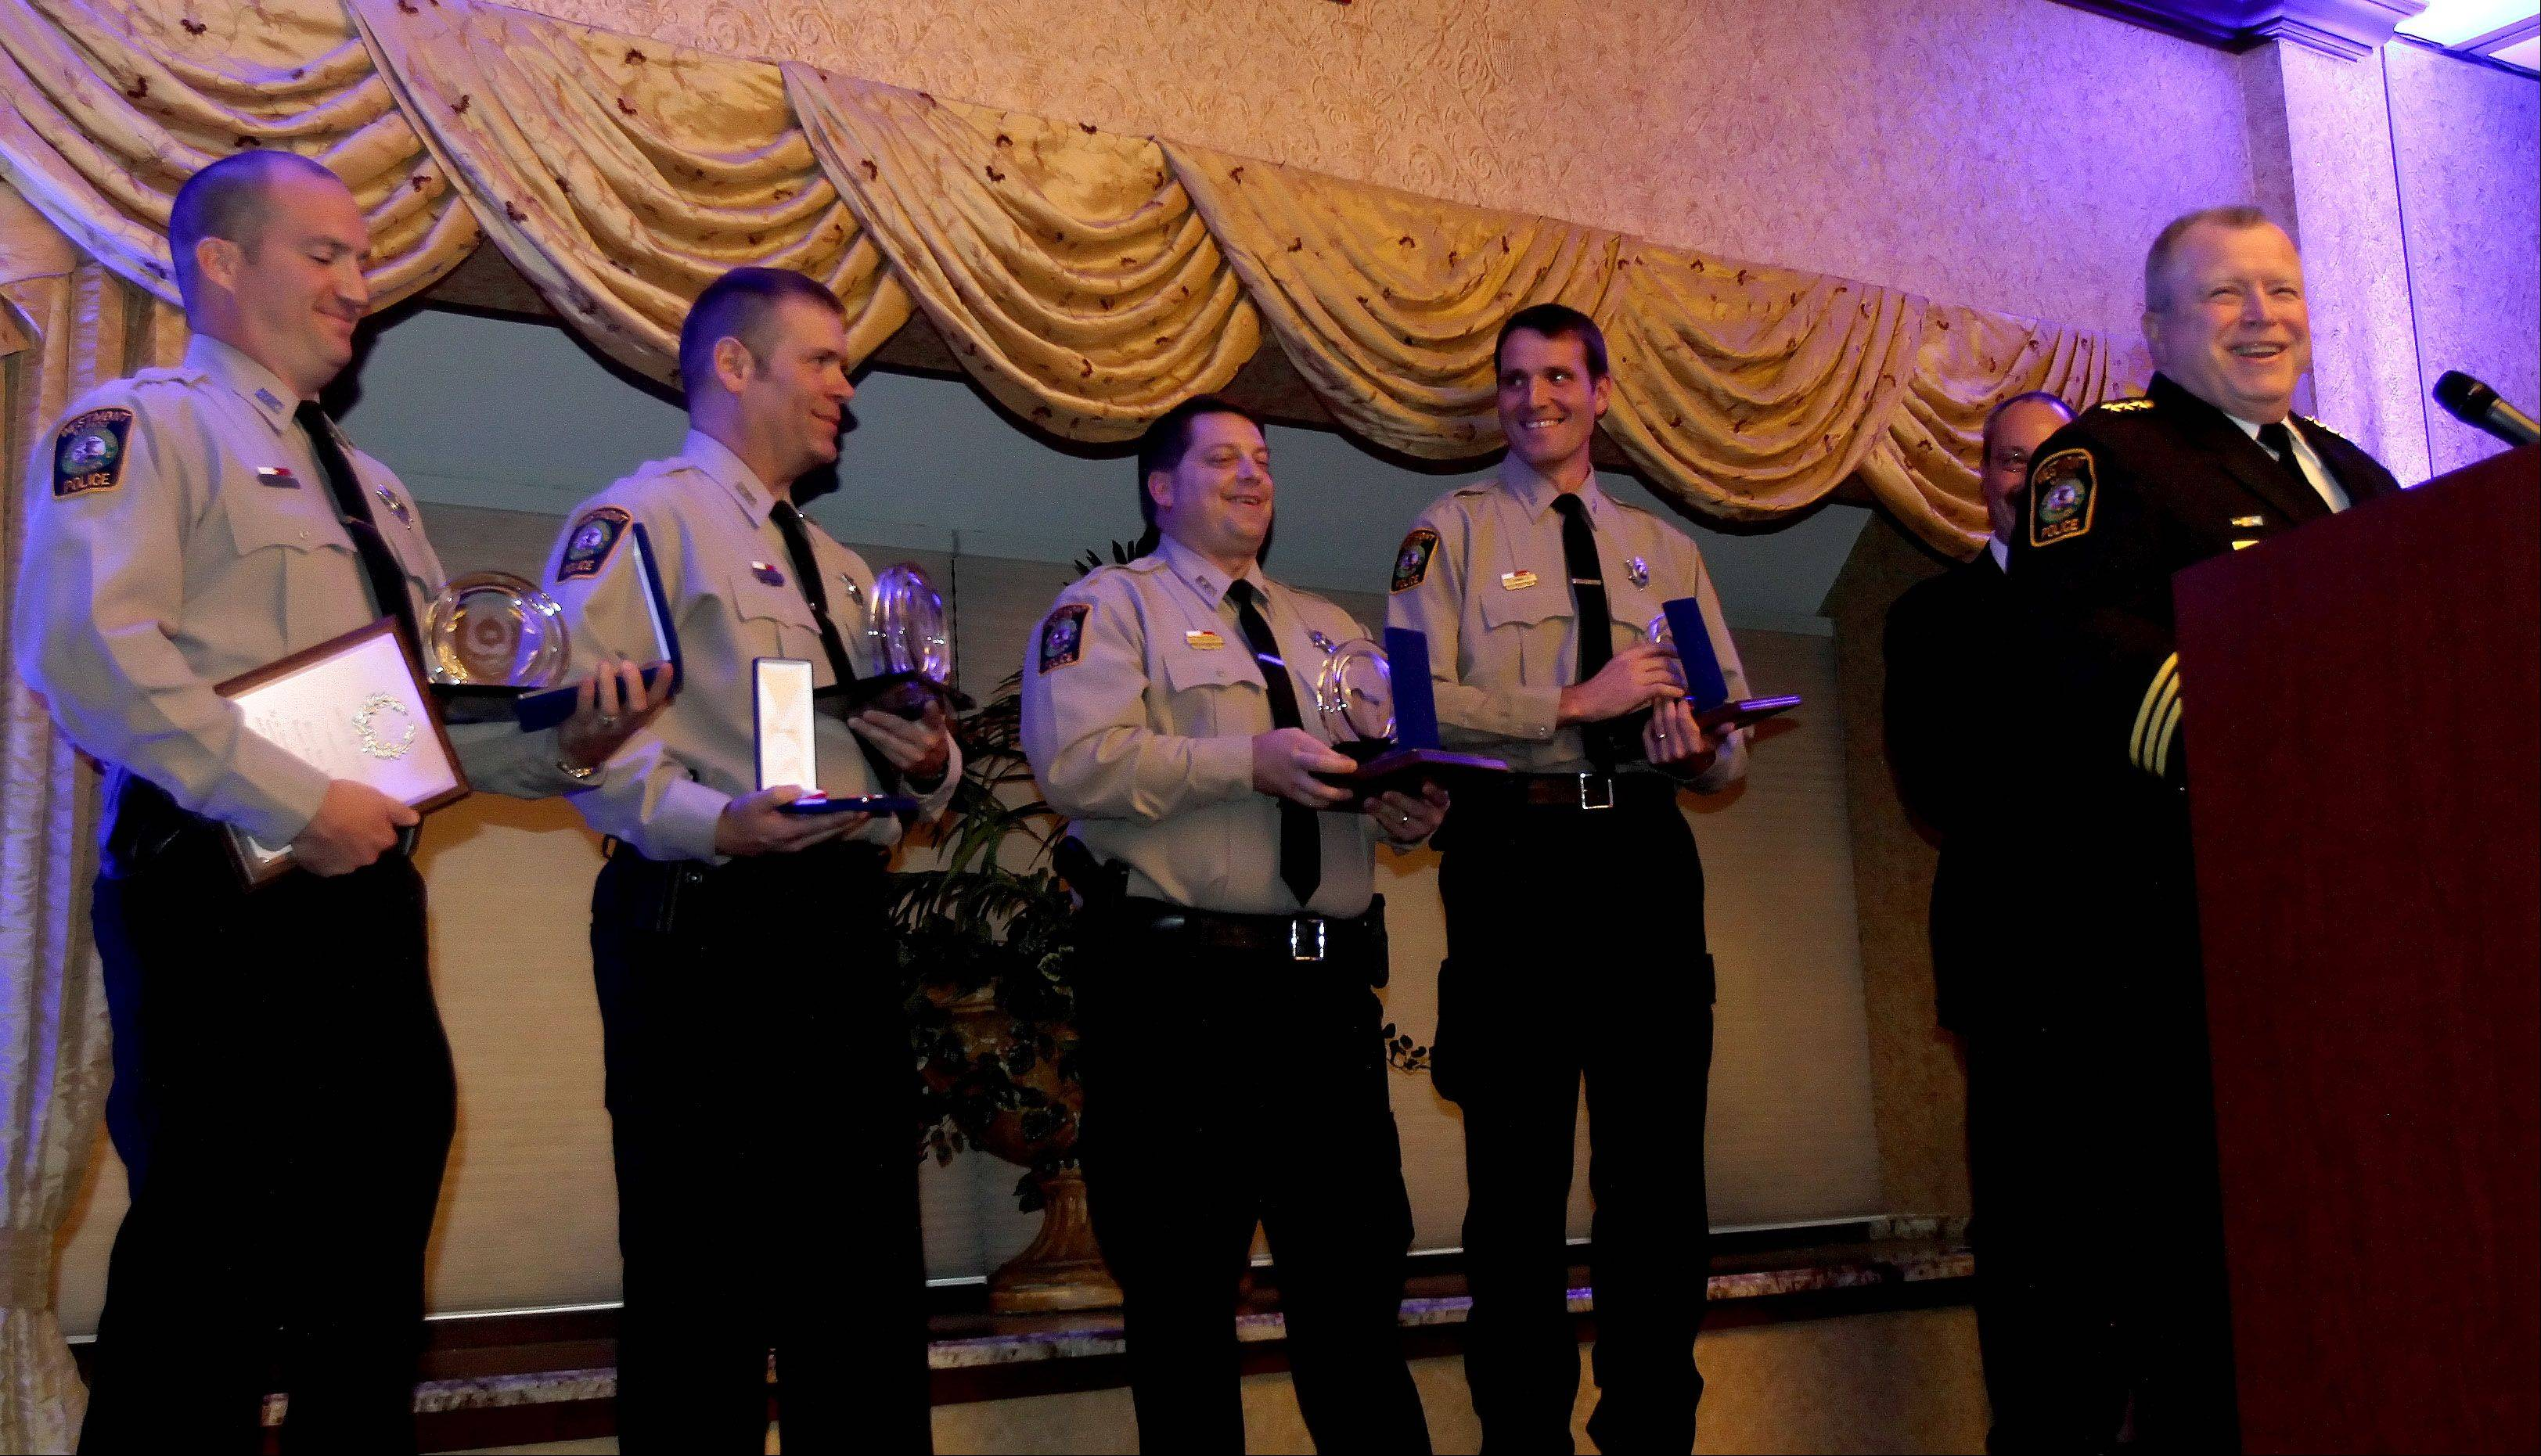 Left to right are Officers Gregory Hausner, John Majeski, Sean Ryan and David Hamblin with the Westmont Police Department, accept their Awards of Valor from the Hundred Club of DuPage County.